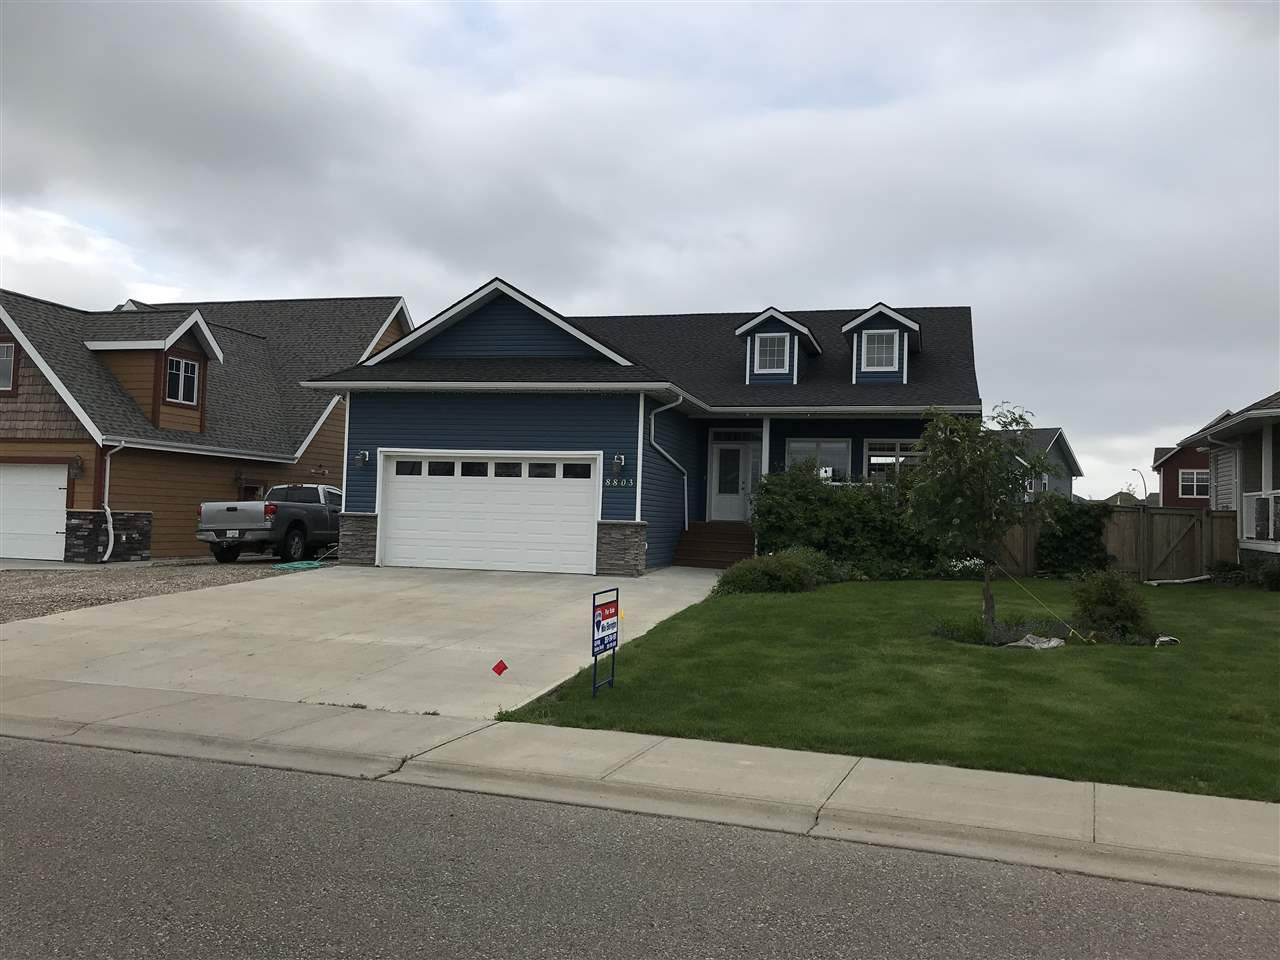 "Main Photo: 8803 111 Avenue in Fort St. John: Fort St. John - City NE House for sale in ""WHISPERING WINDS"" (Fort St. John (Zone 60))  : MLS®# R2279272"